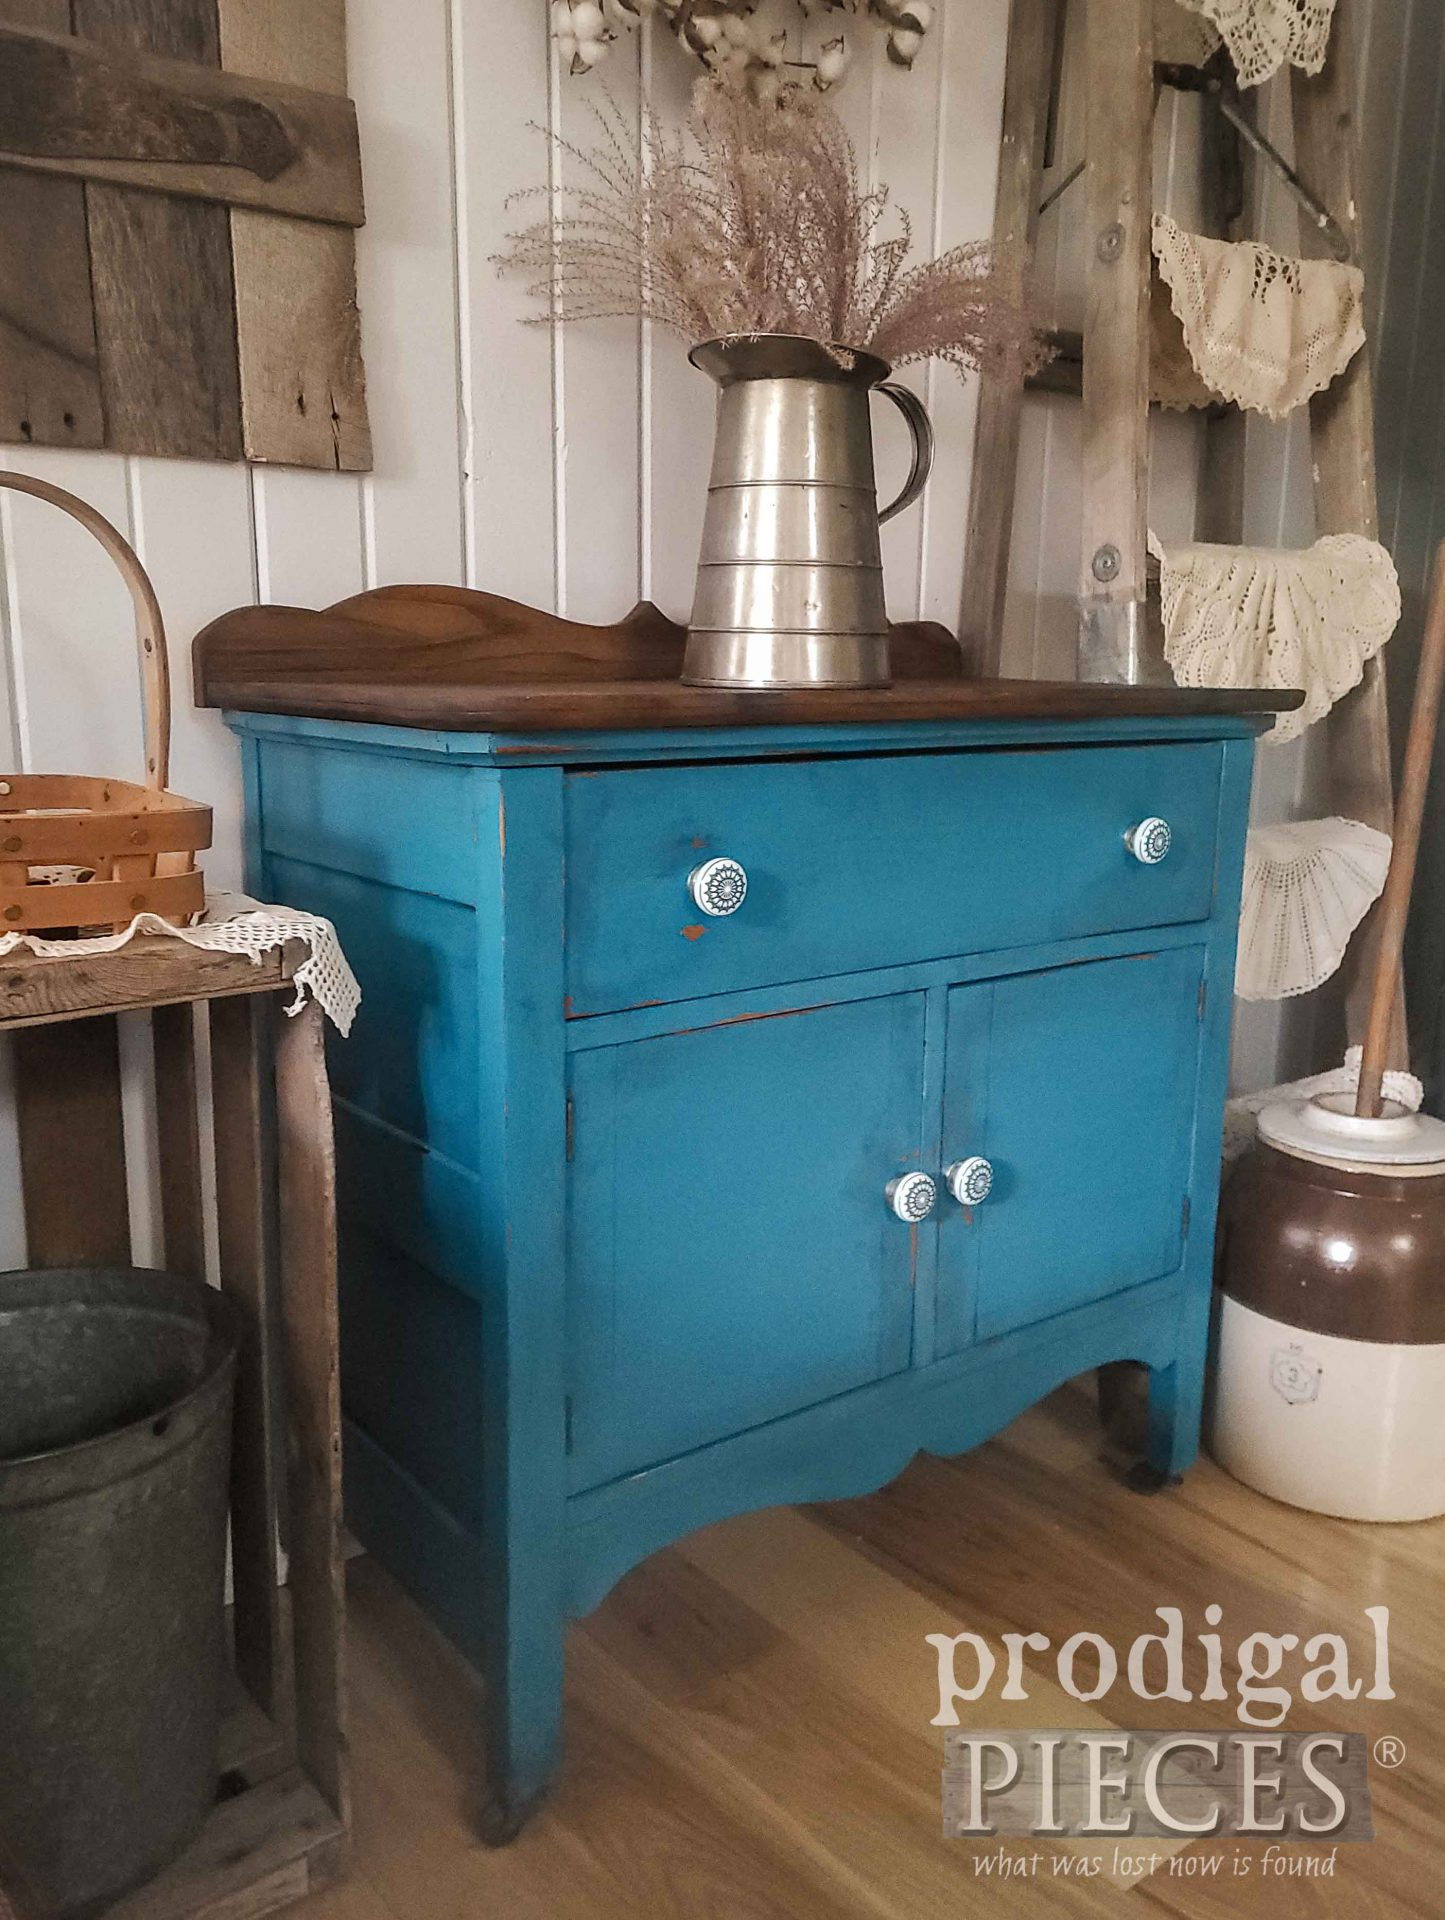 Rustic Blue Farmhouse Wash Stand Makeover by Larissa of Prodigal Pieces | prodigalpieces.com #prodigalpieces #farmhouse #home #diy #homedecor #furntiure